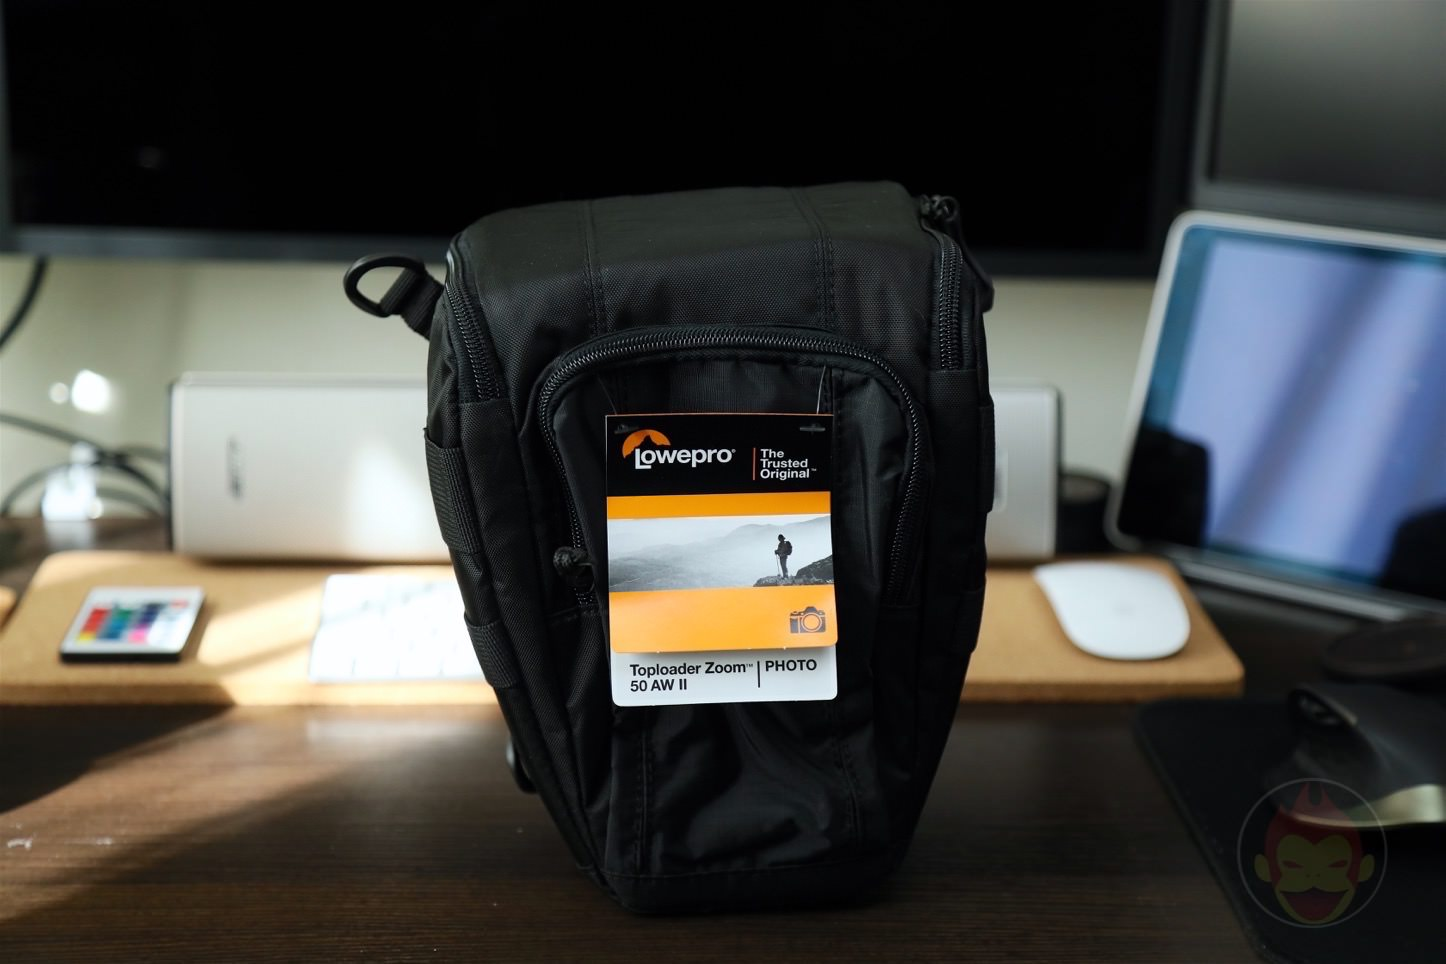 Lowepro-Camera-bag-Toploader-Zoom-AW2-01.jpg